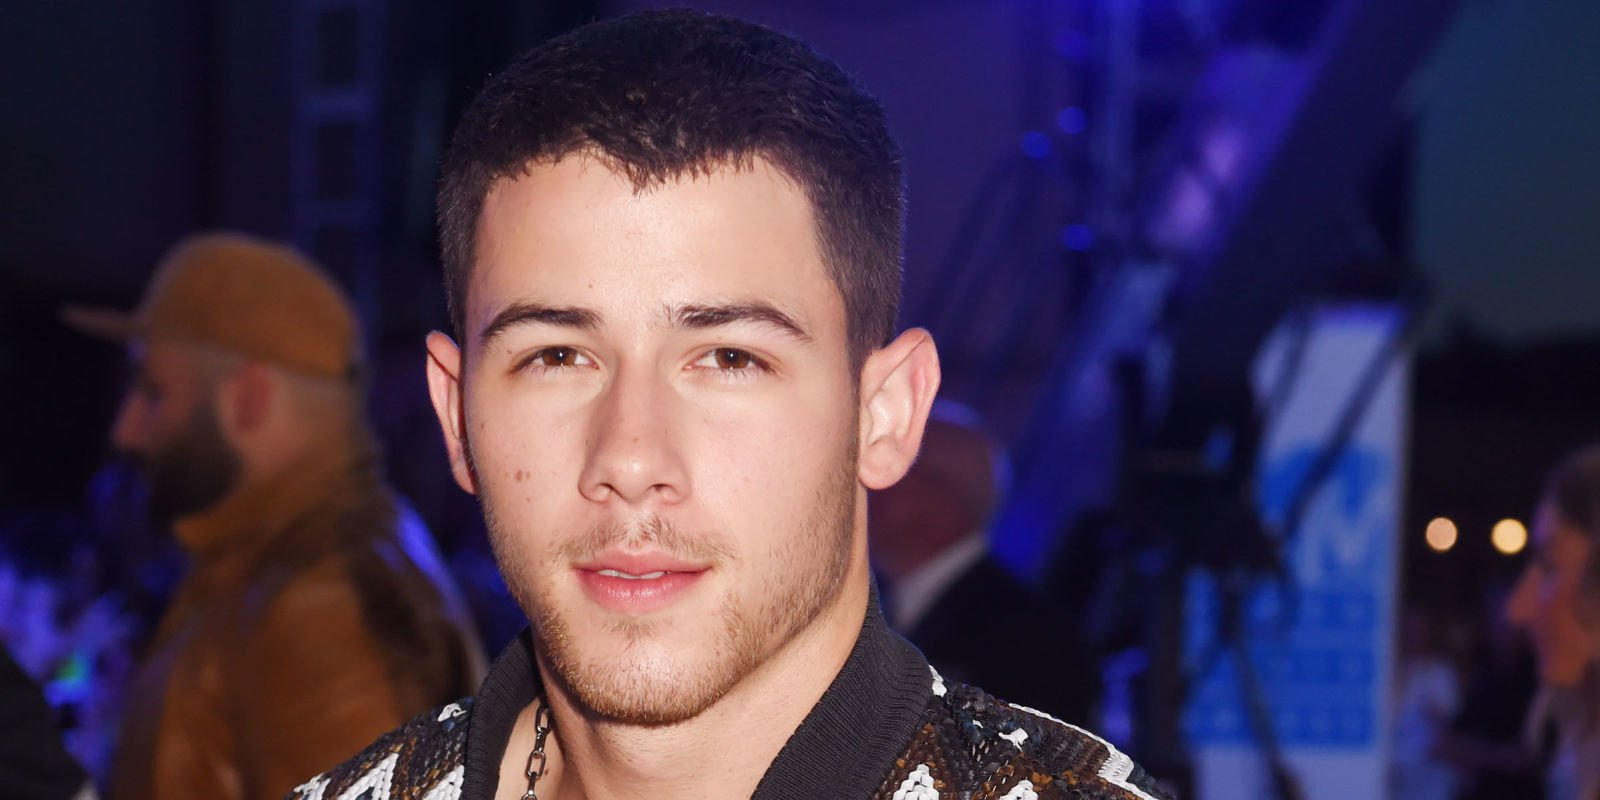 Nick Jonas's Sizable Bulge Was on Display During His VMAs Performance https://t.co/DEr65IqSBY https://t.co/MEquaOF2Mx